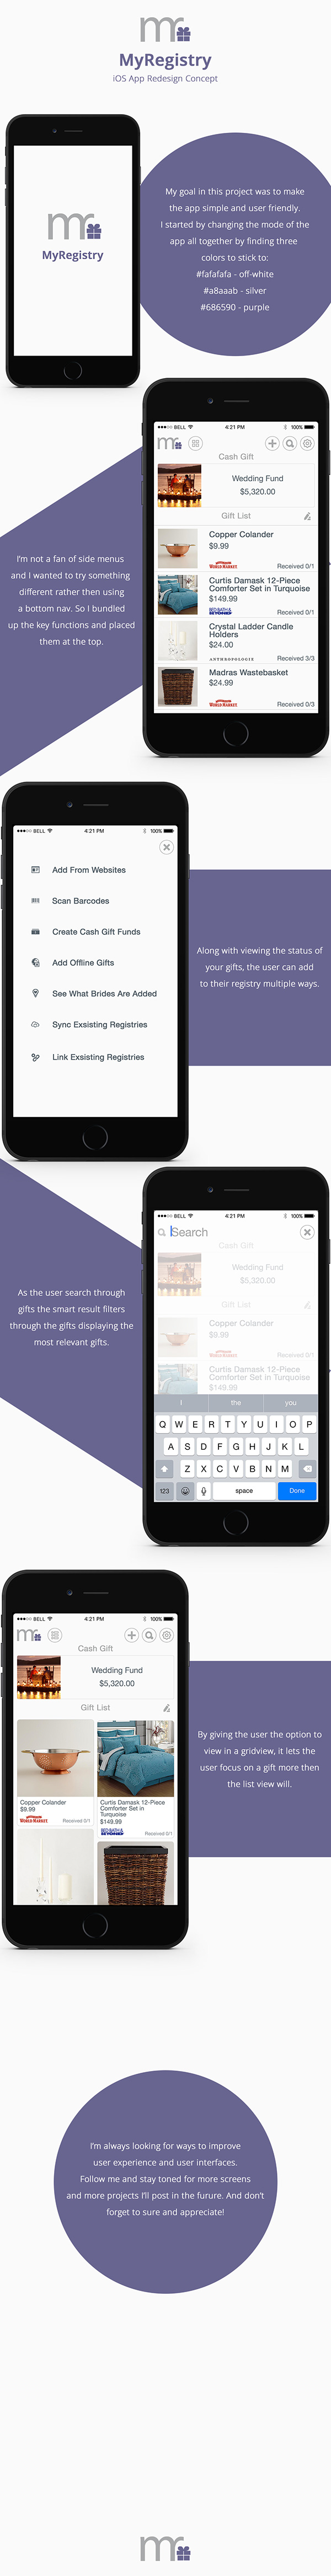 List View settings edit grid view search add ios8 icons gift registry app redesign